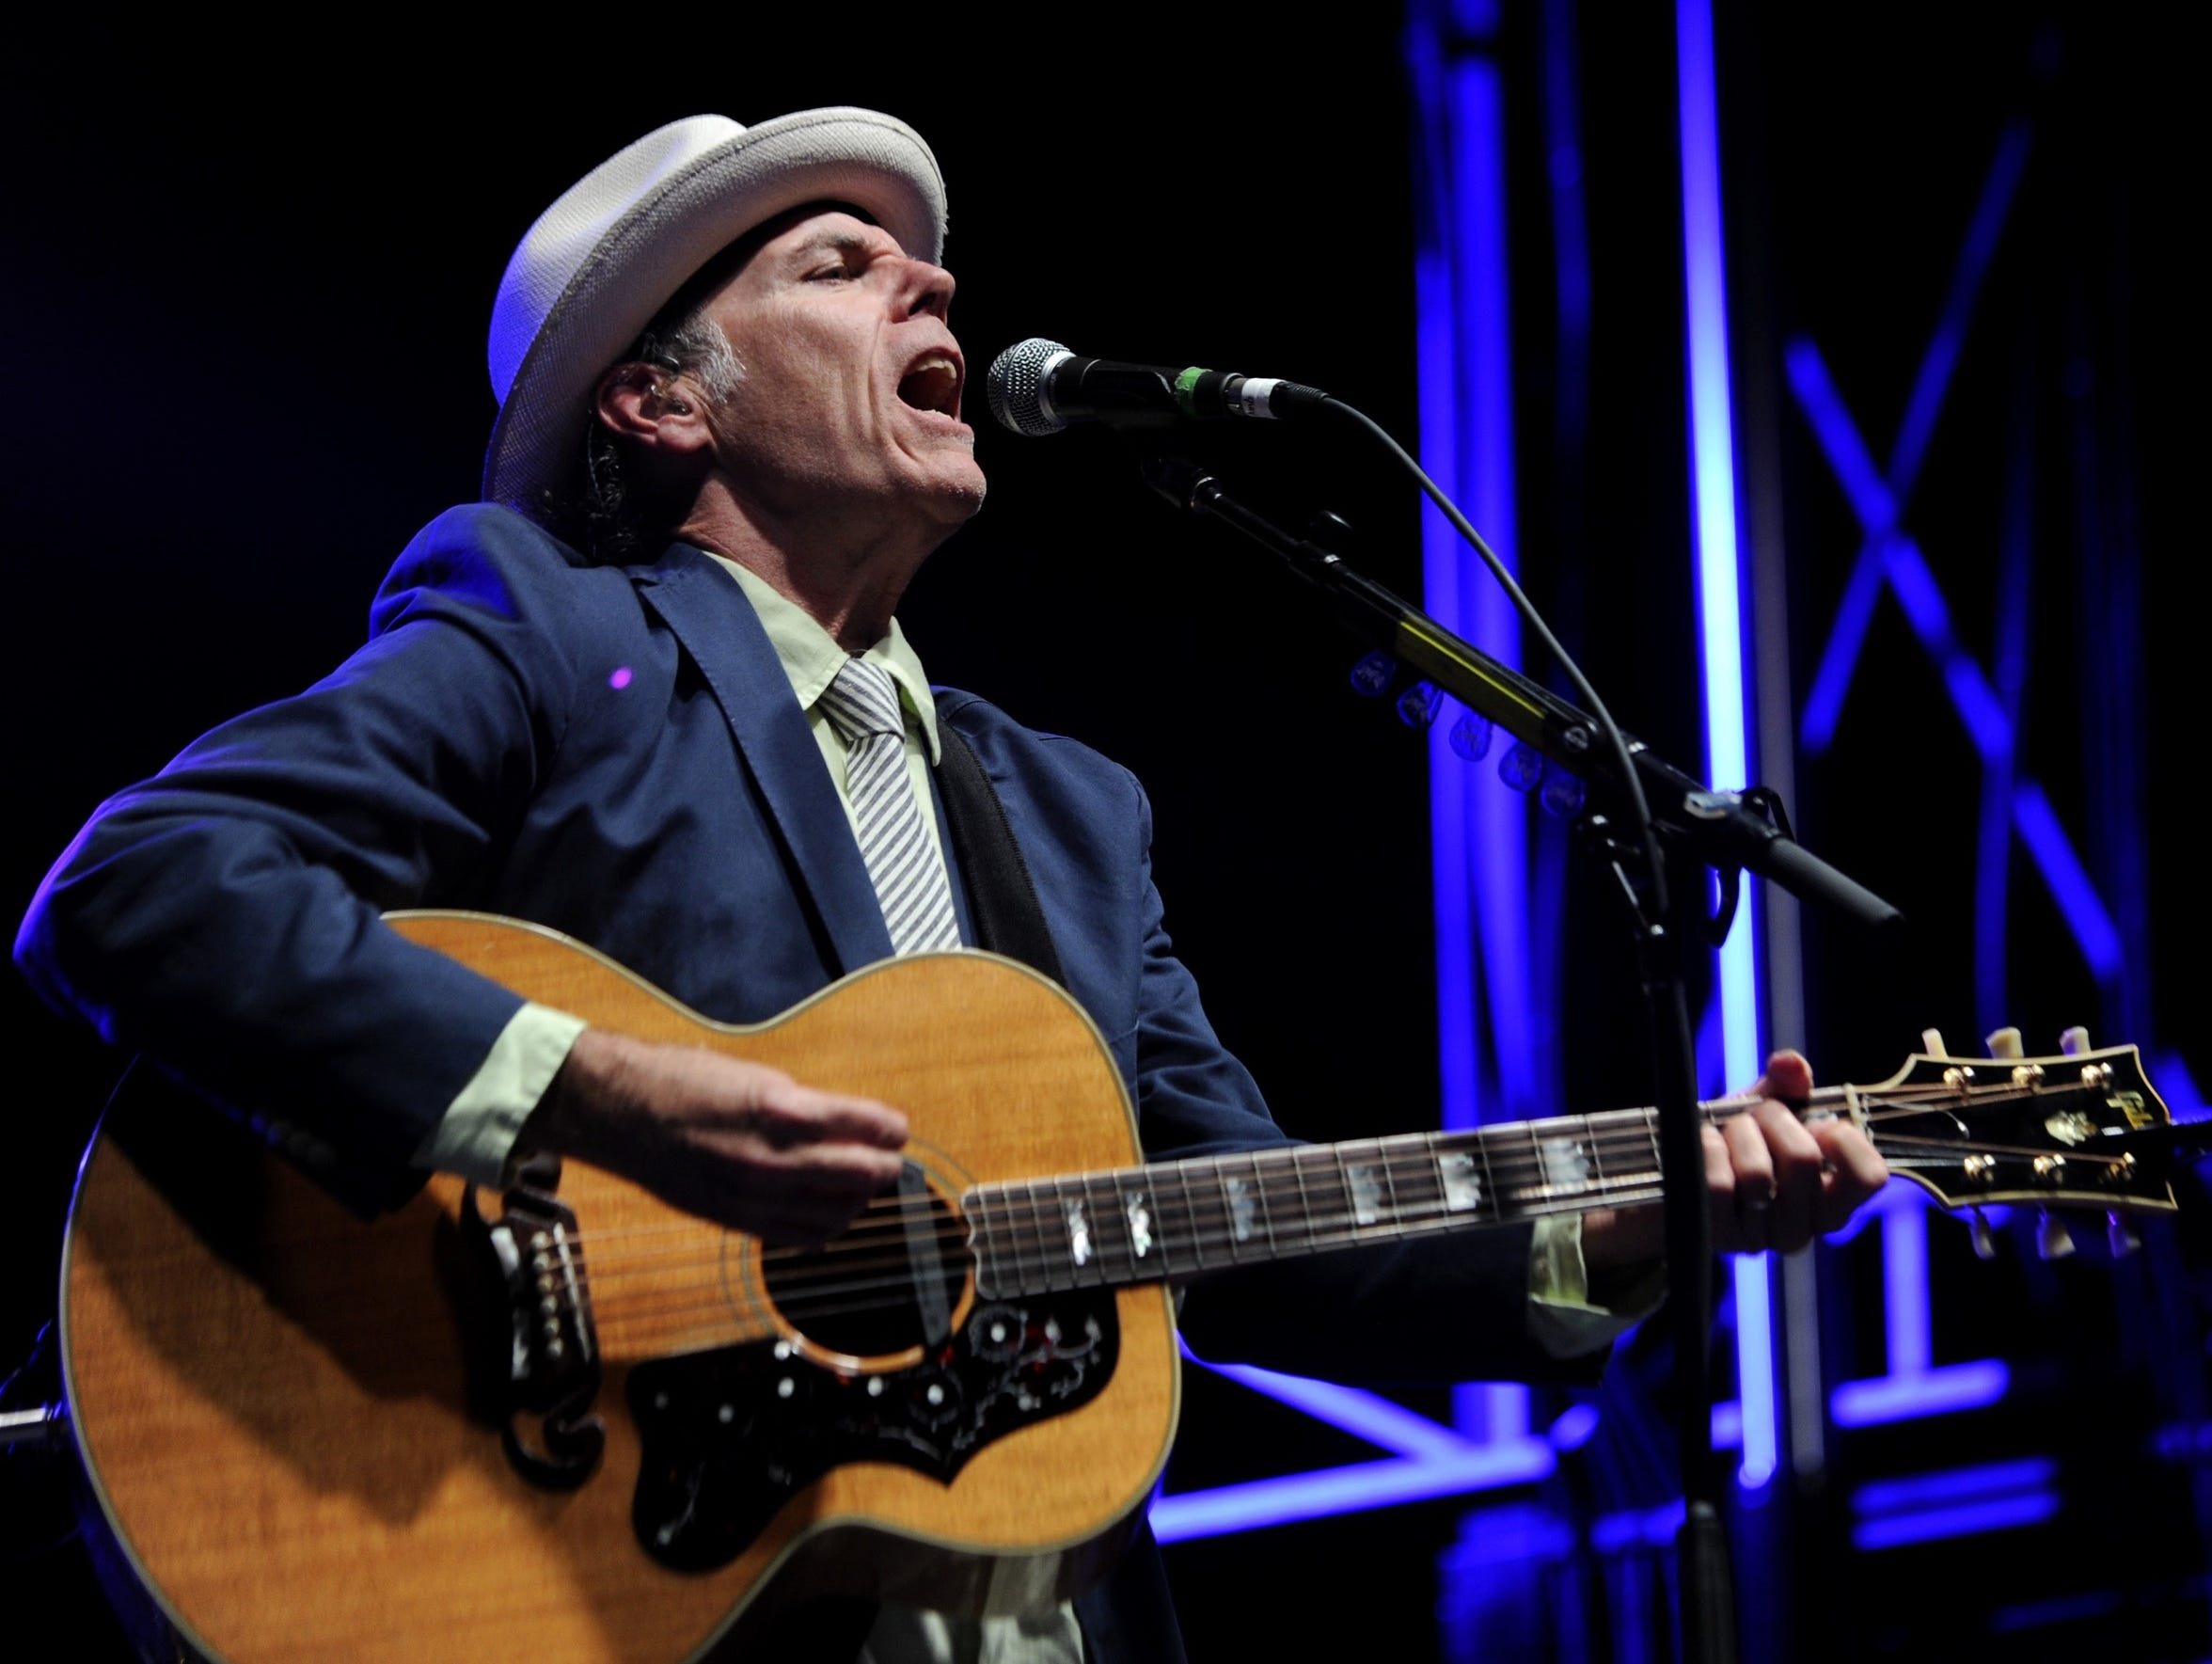 John Hiatt received the Americana Music Association's